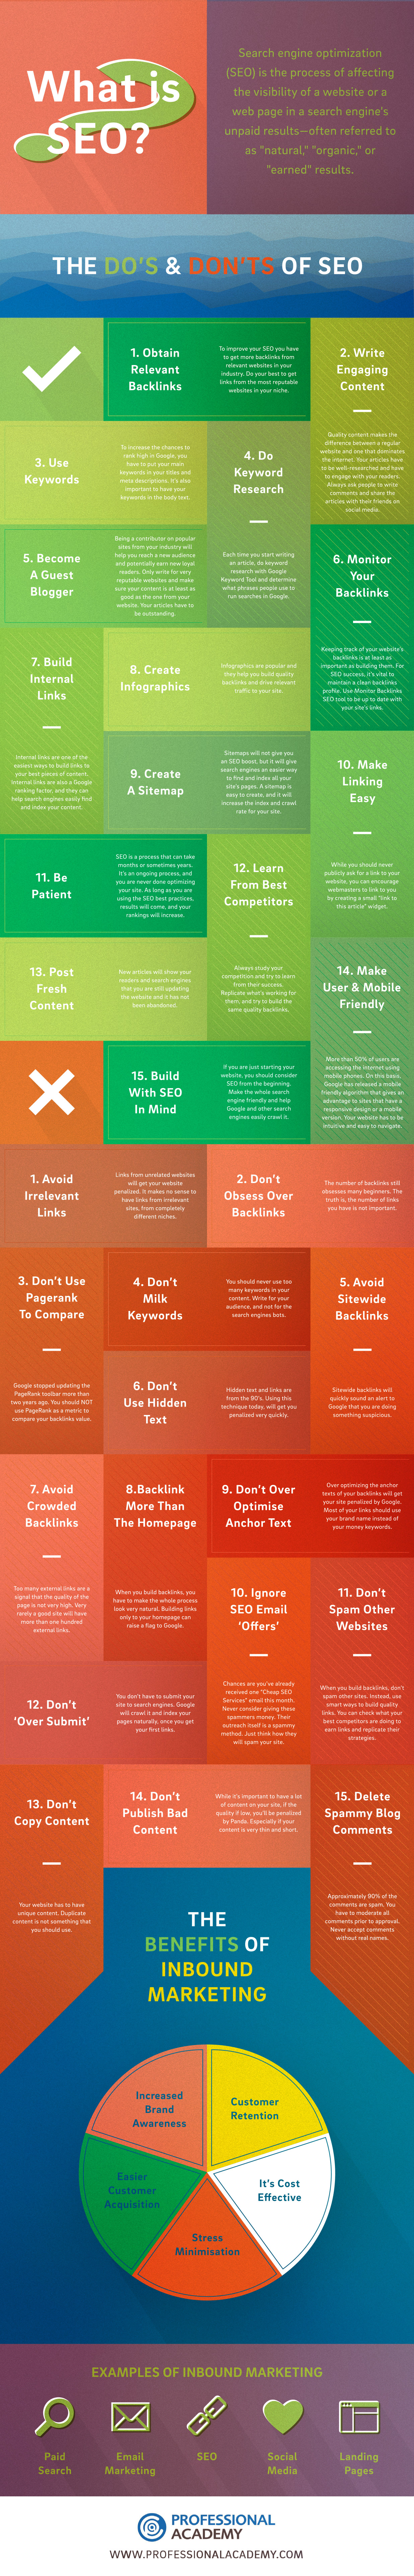 What is SEO? 30 Do's and Don'ts of SEO - infographic